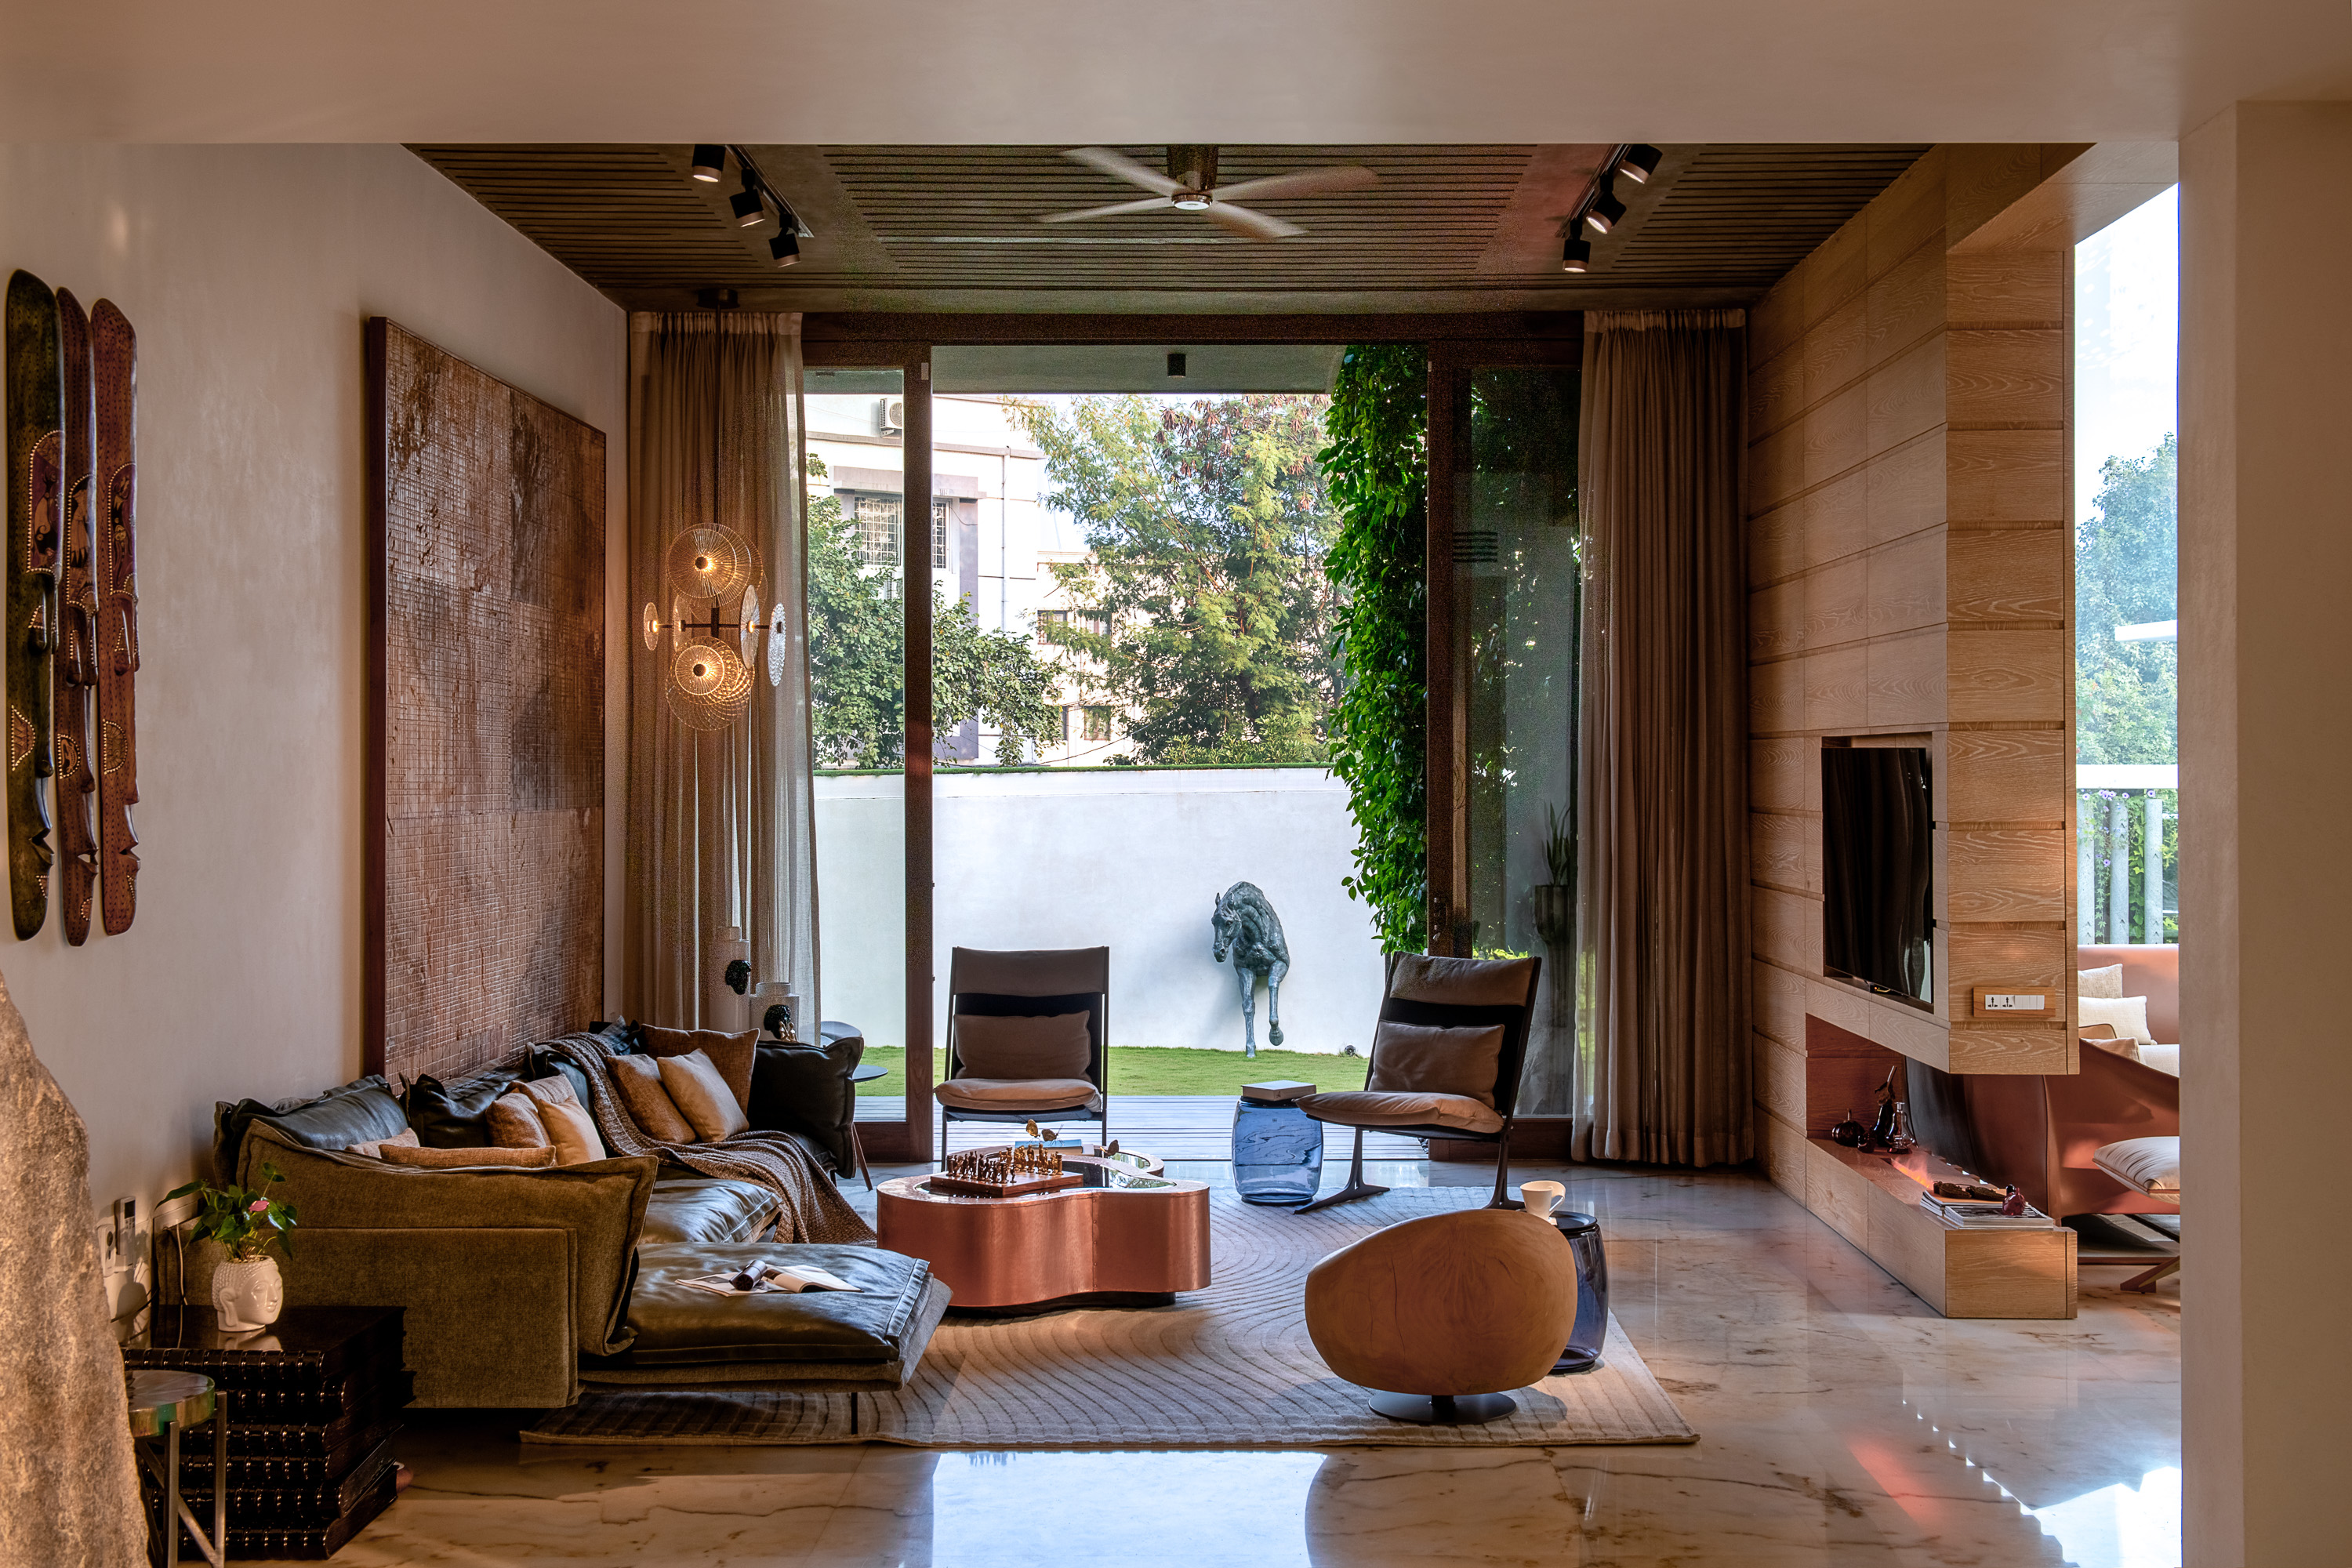 Sustainability Meets Luxury In This Private Residence by NA Architects (4) na architects NA Architects Design A Private Residence Where Copper Hues Reign Sustainability Meets Luxury In This Private Residence by NA Architects 4